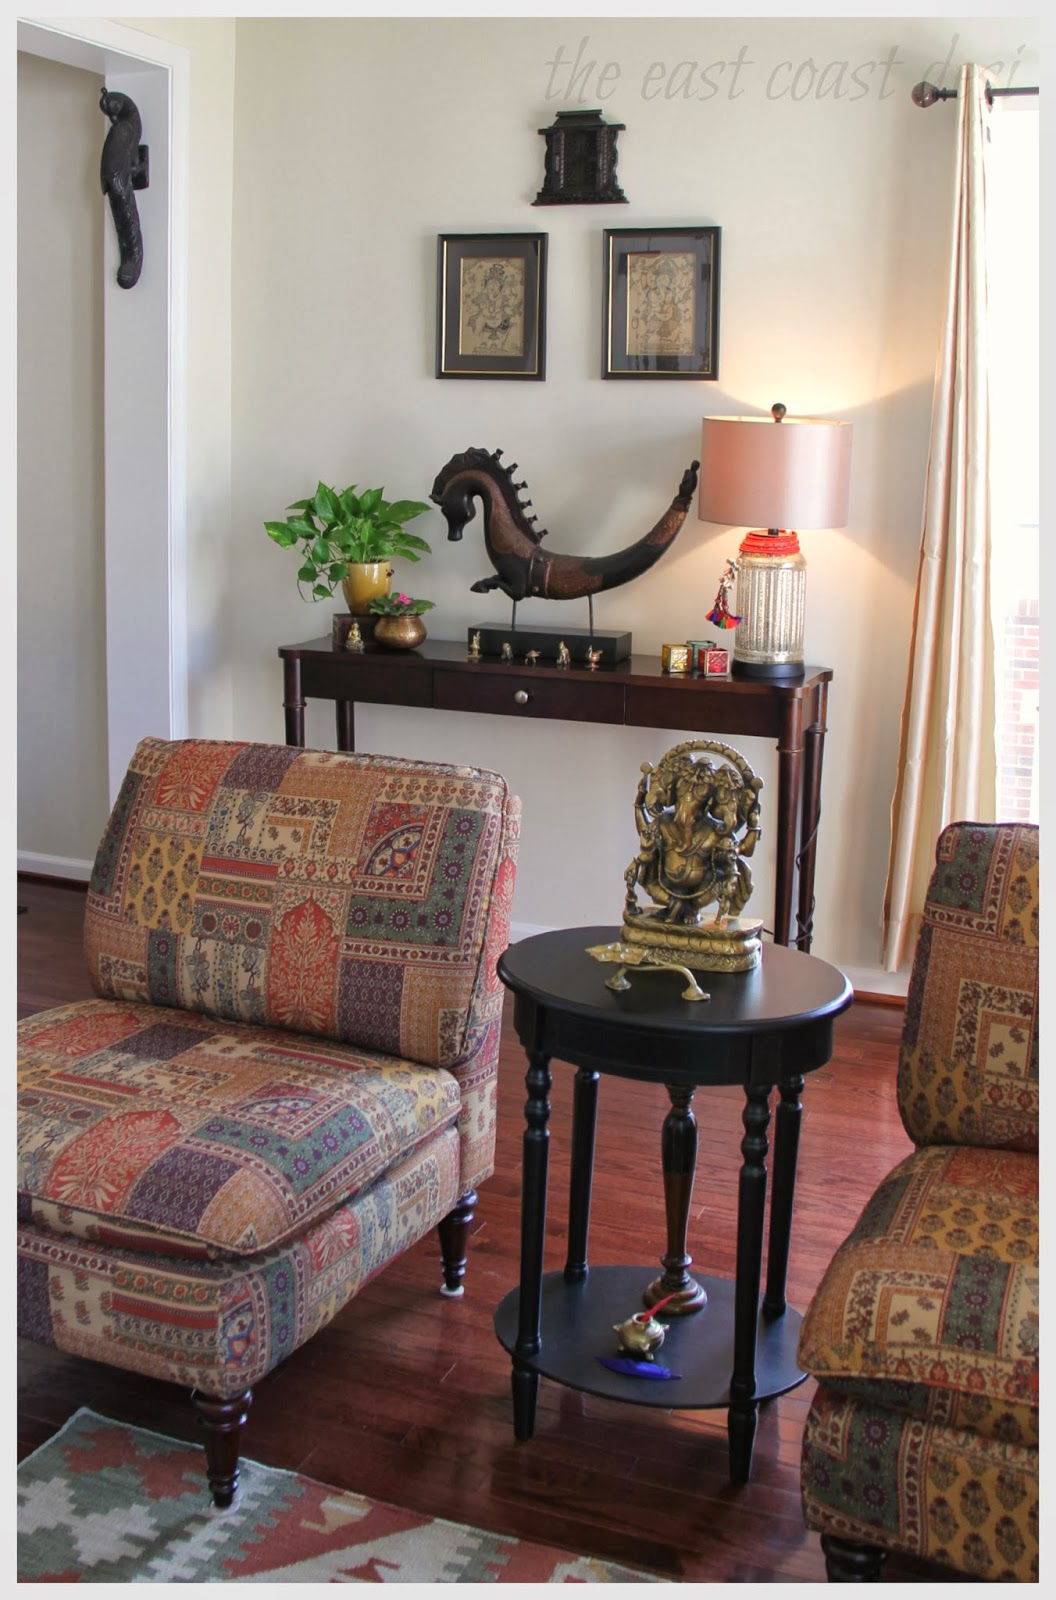 The east coast desi my living room a reflection of india for Indian ethnic living room designs